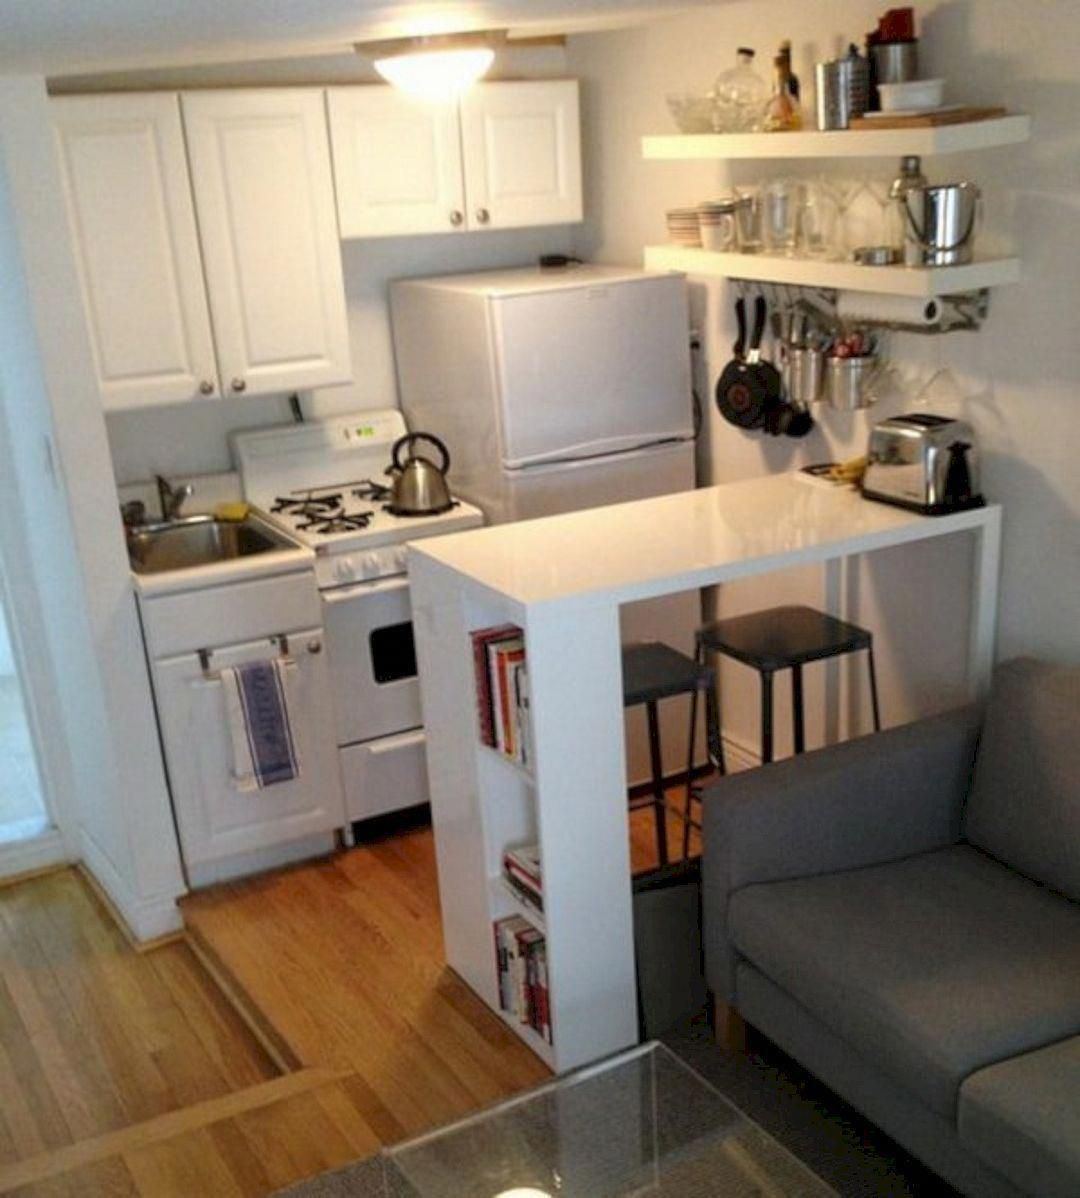 A Guide To Efficient Small Kitchen Design For Apartment Small Apartment Kitchen Apartment Therapy Small Spaces Small Apartment Therapy